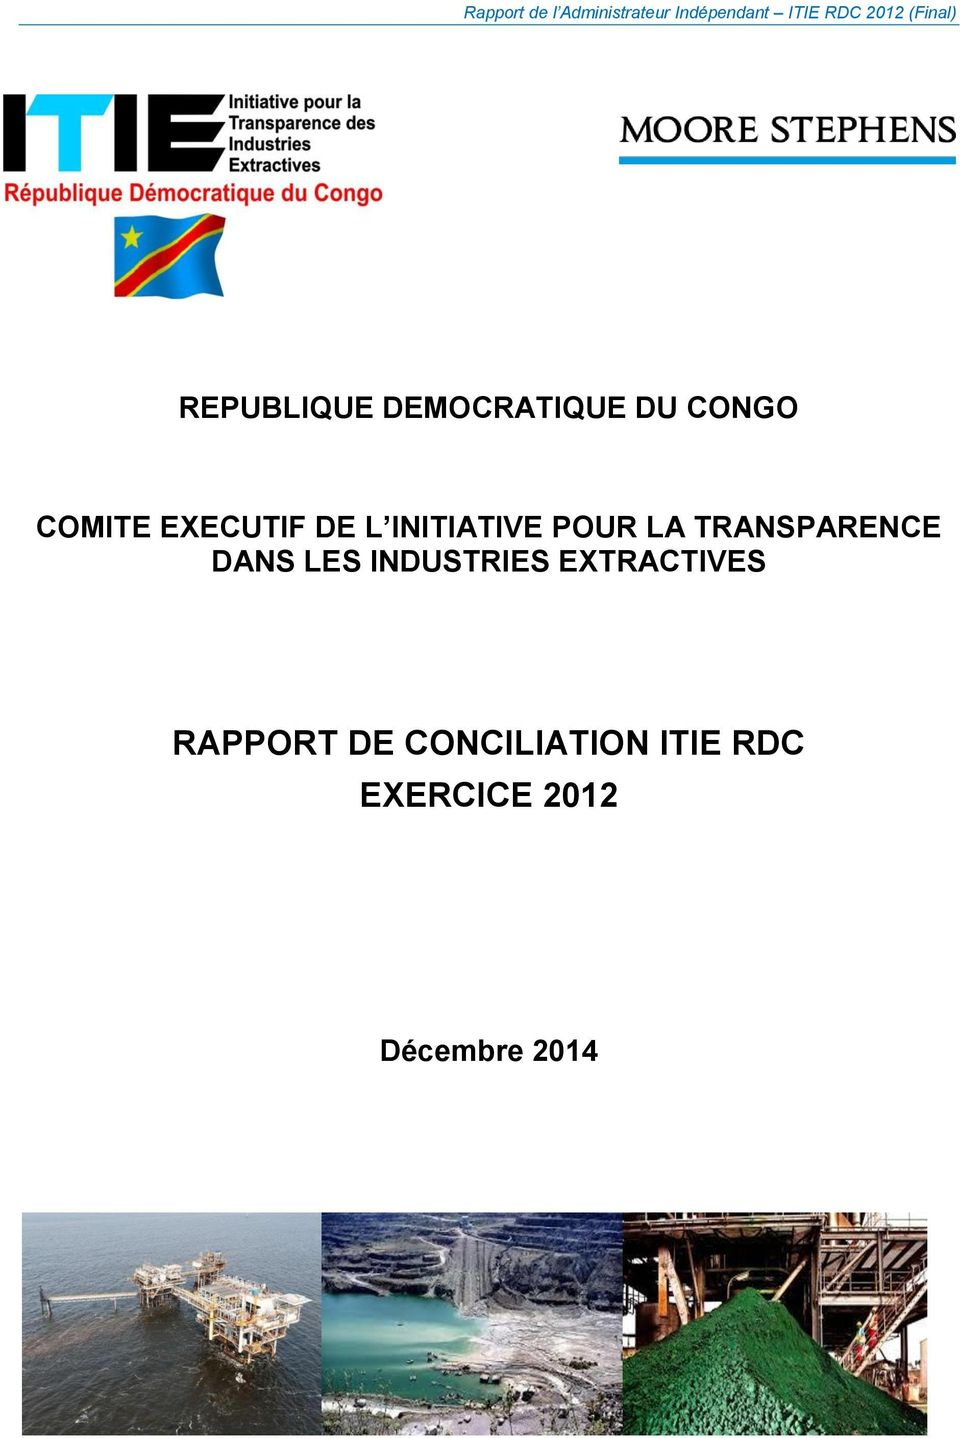 TRANSPARENCE DANS LES INDUSTRIES EXTRACTIVES